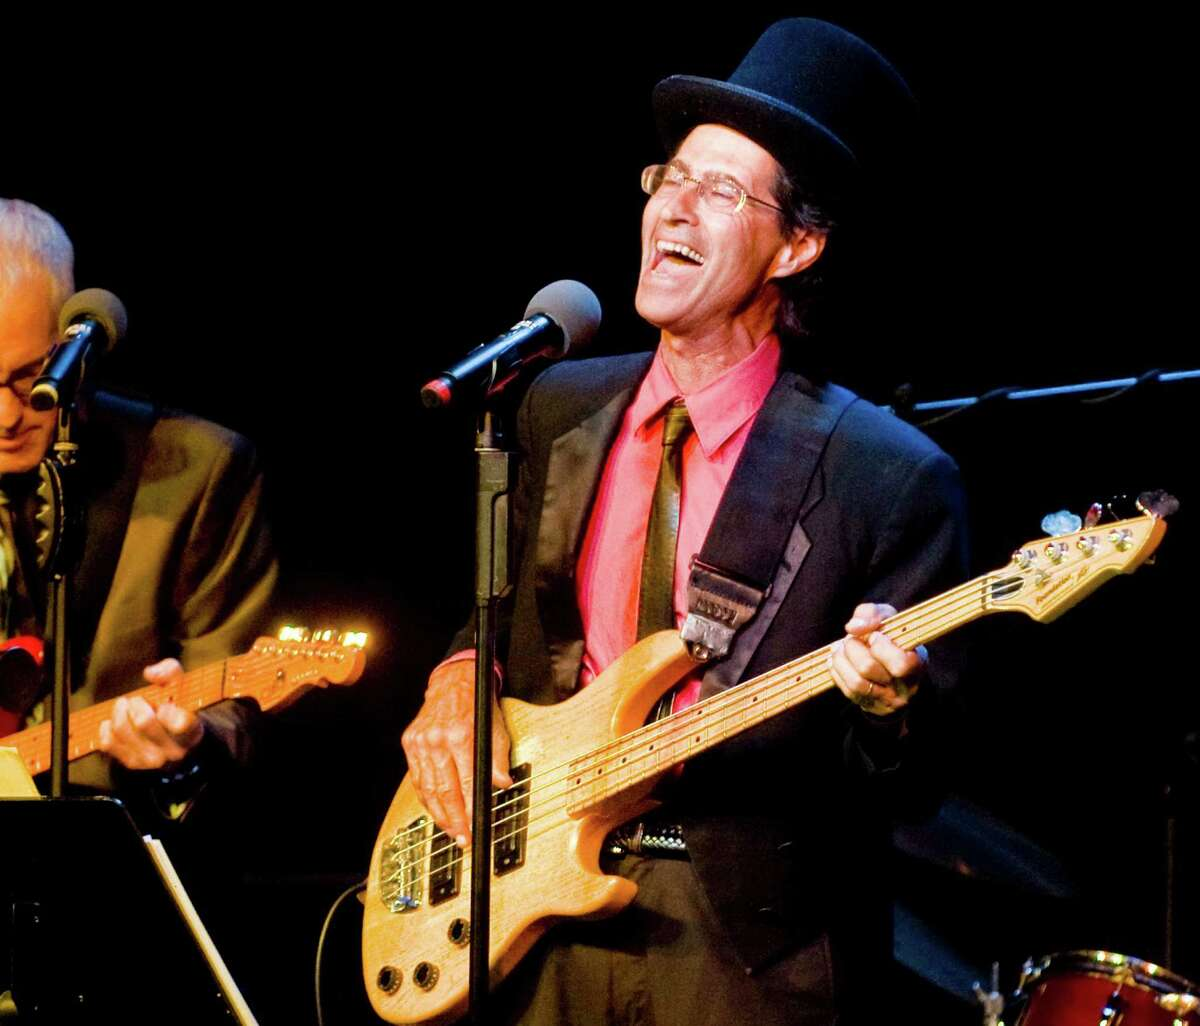 Billy Michael and his Cavalcade of Stars performing in The Great Danbury Fair Revue at The Palace on Main Street in Danbury. Sunday, Oct. 5, 2014